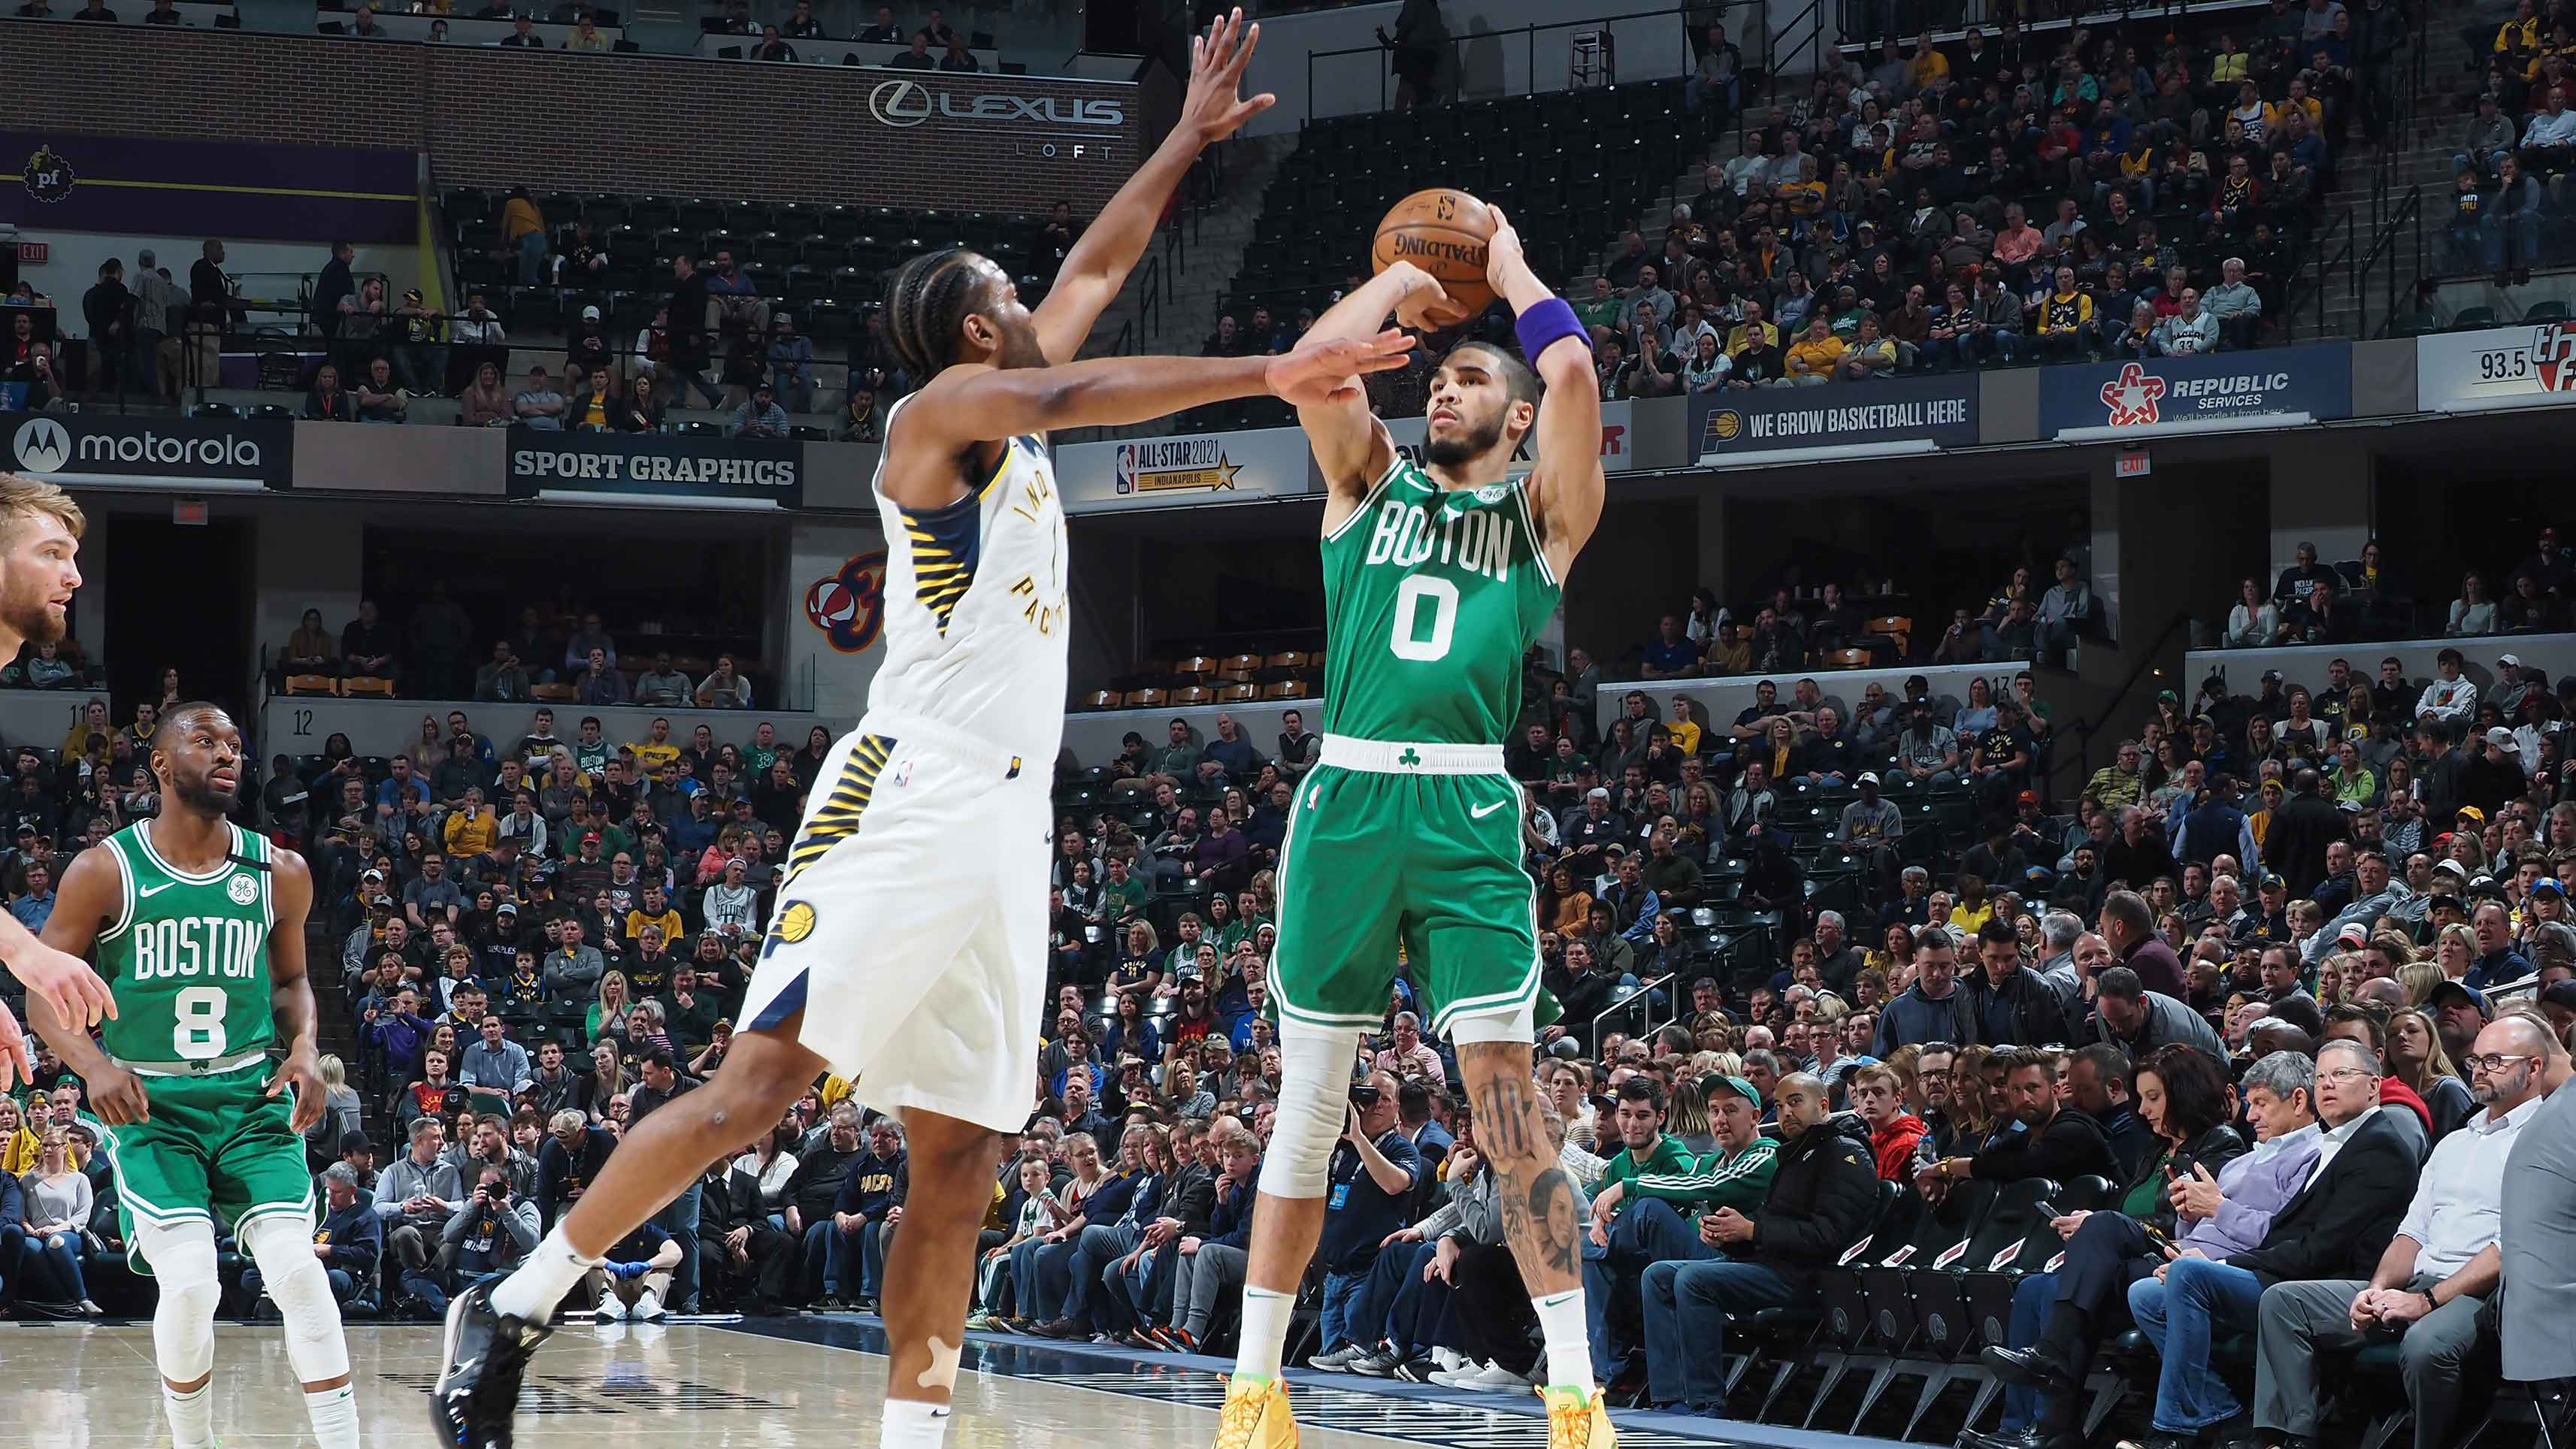 GAME RECAP: Celtics 114, Pacers 111